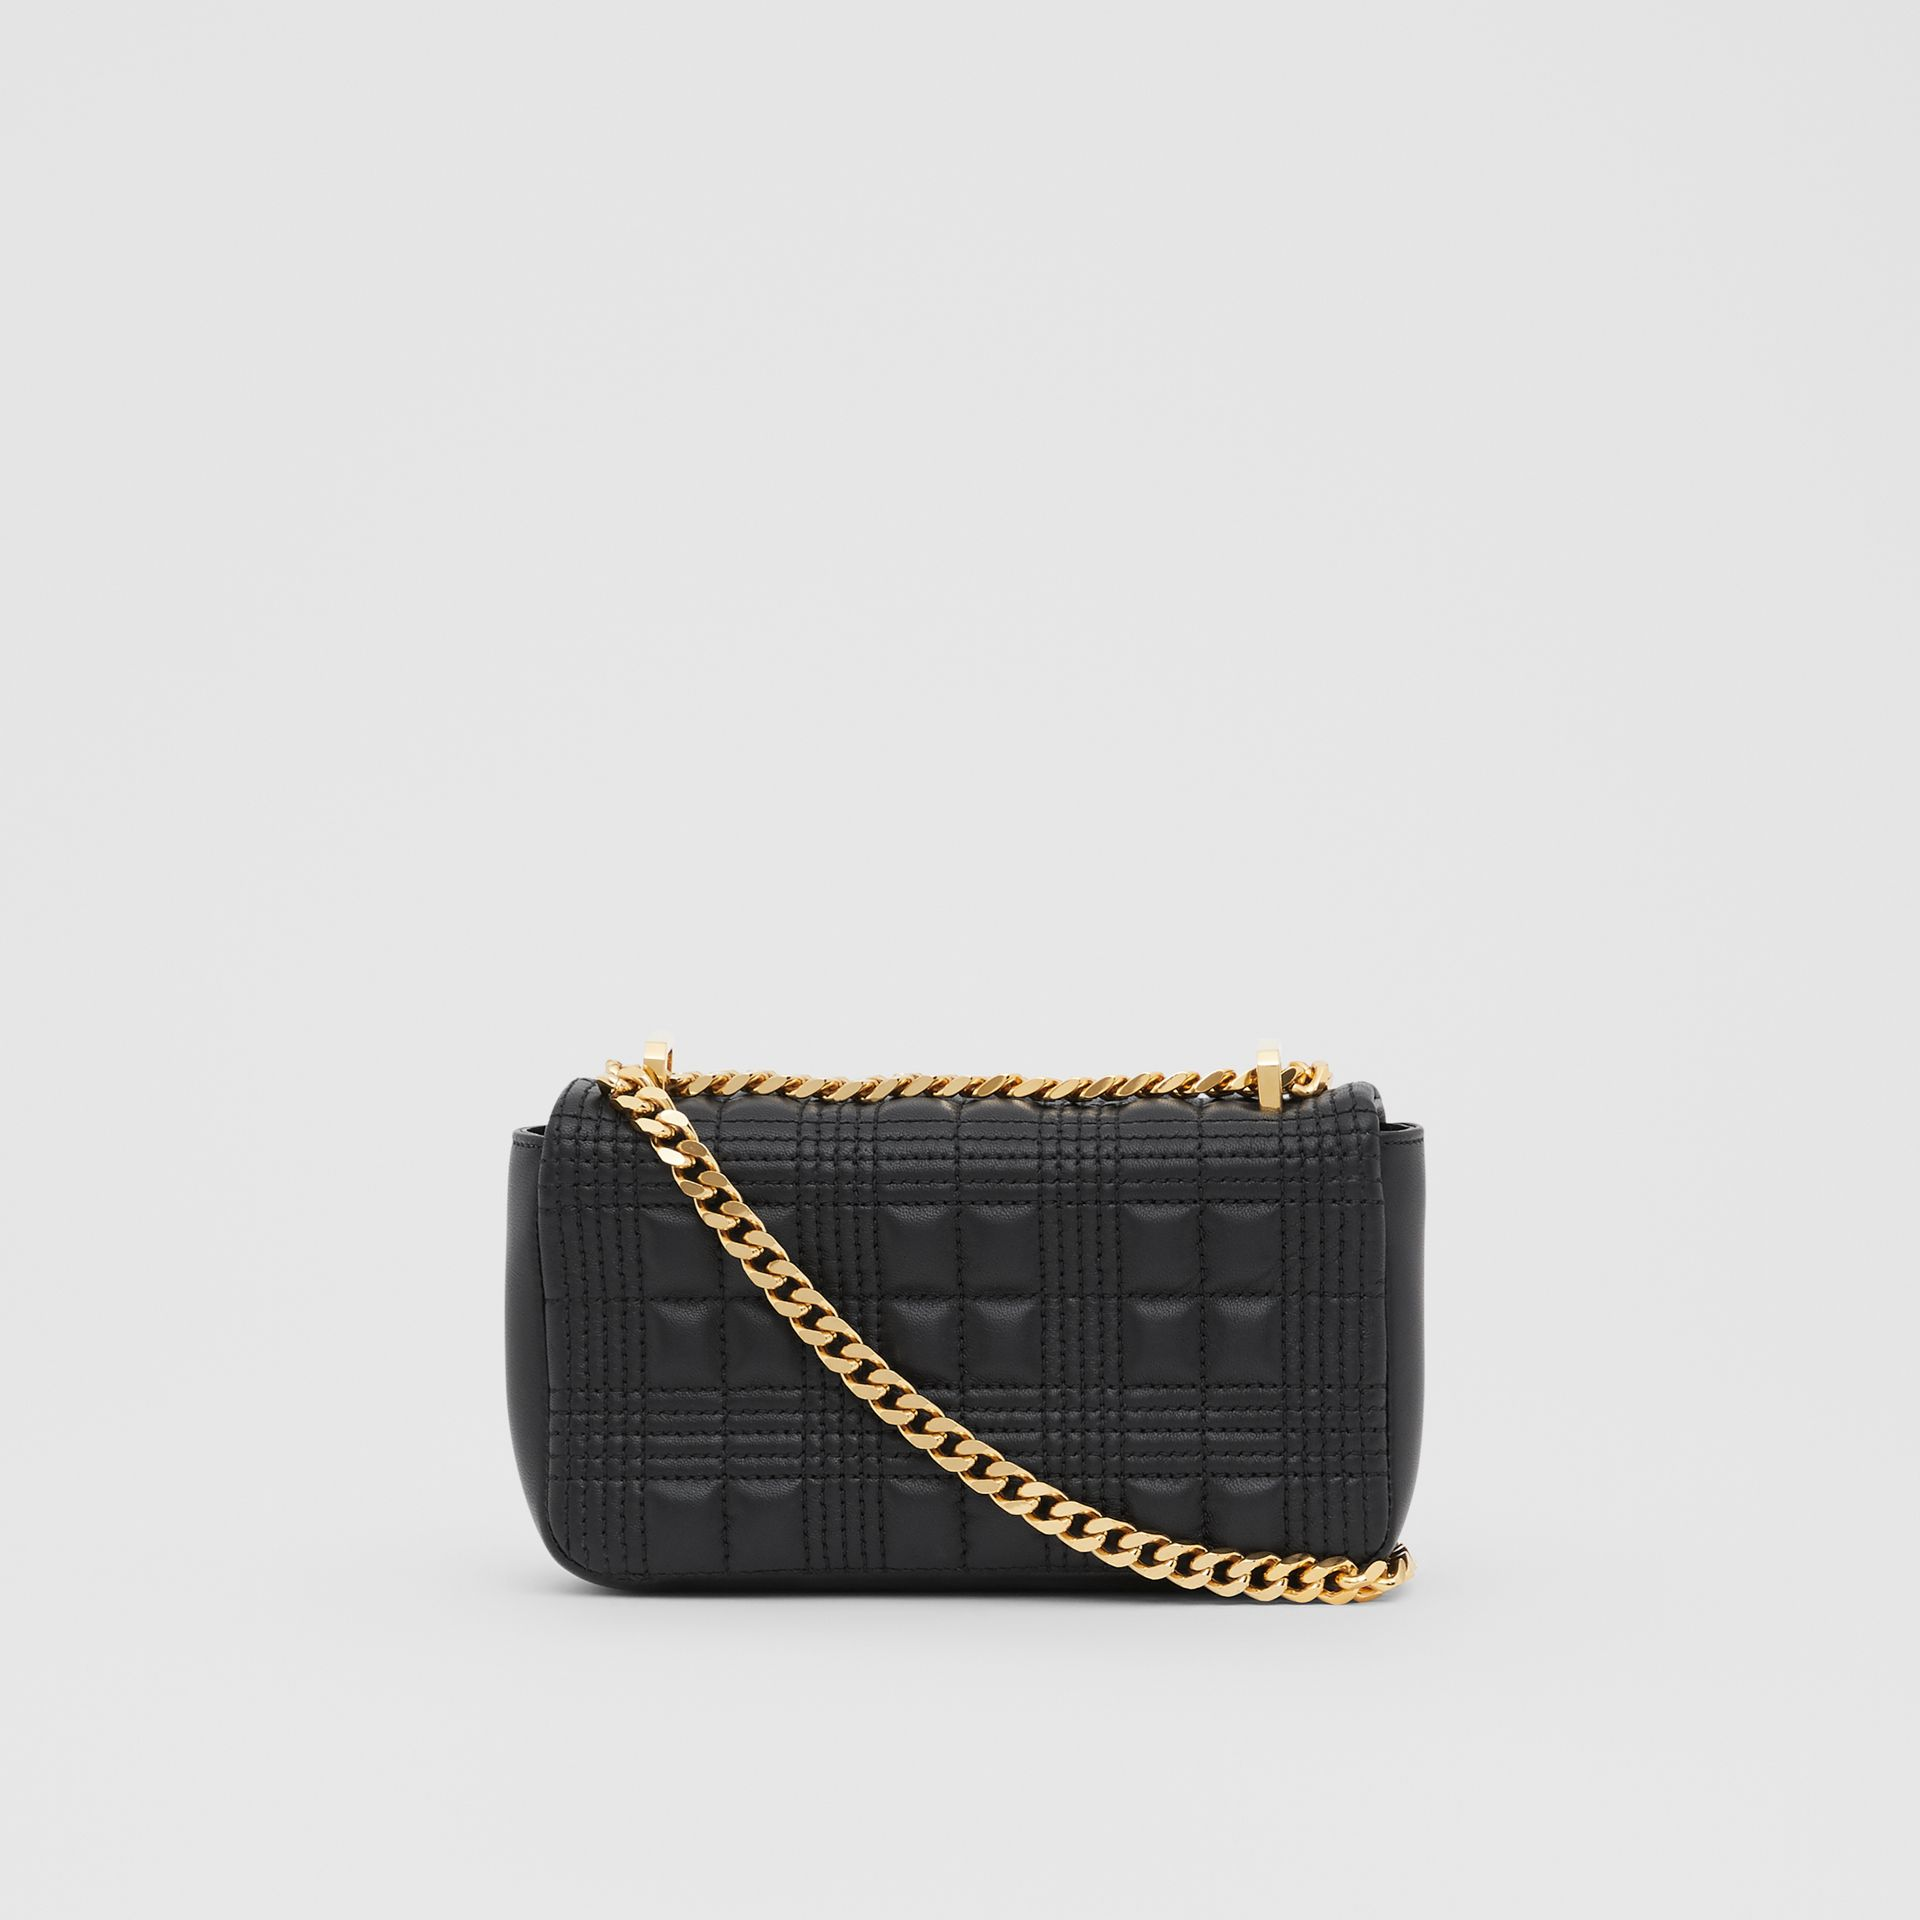 Mini Quilted Lambskin Lola Bag in Black - Women | Burberry - gallery image 5